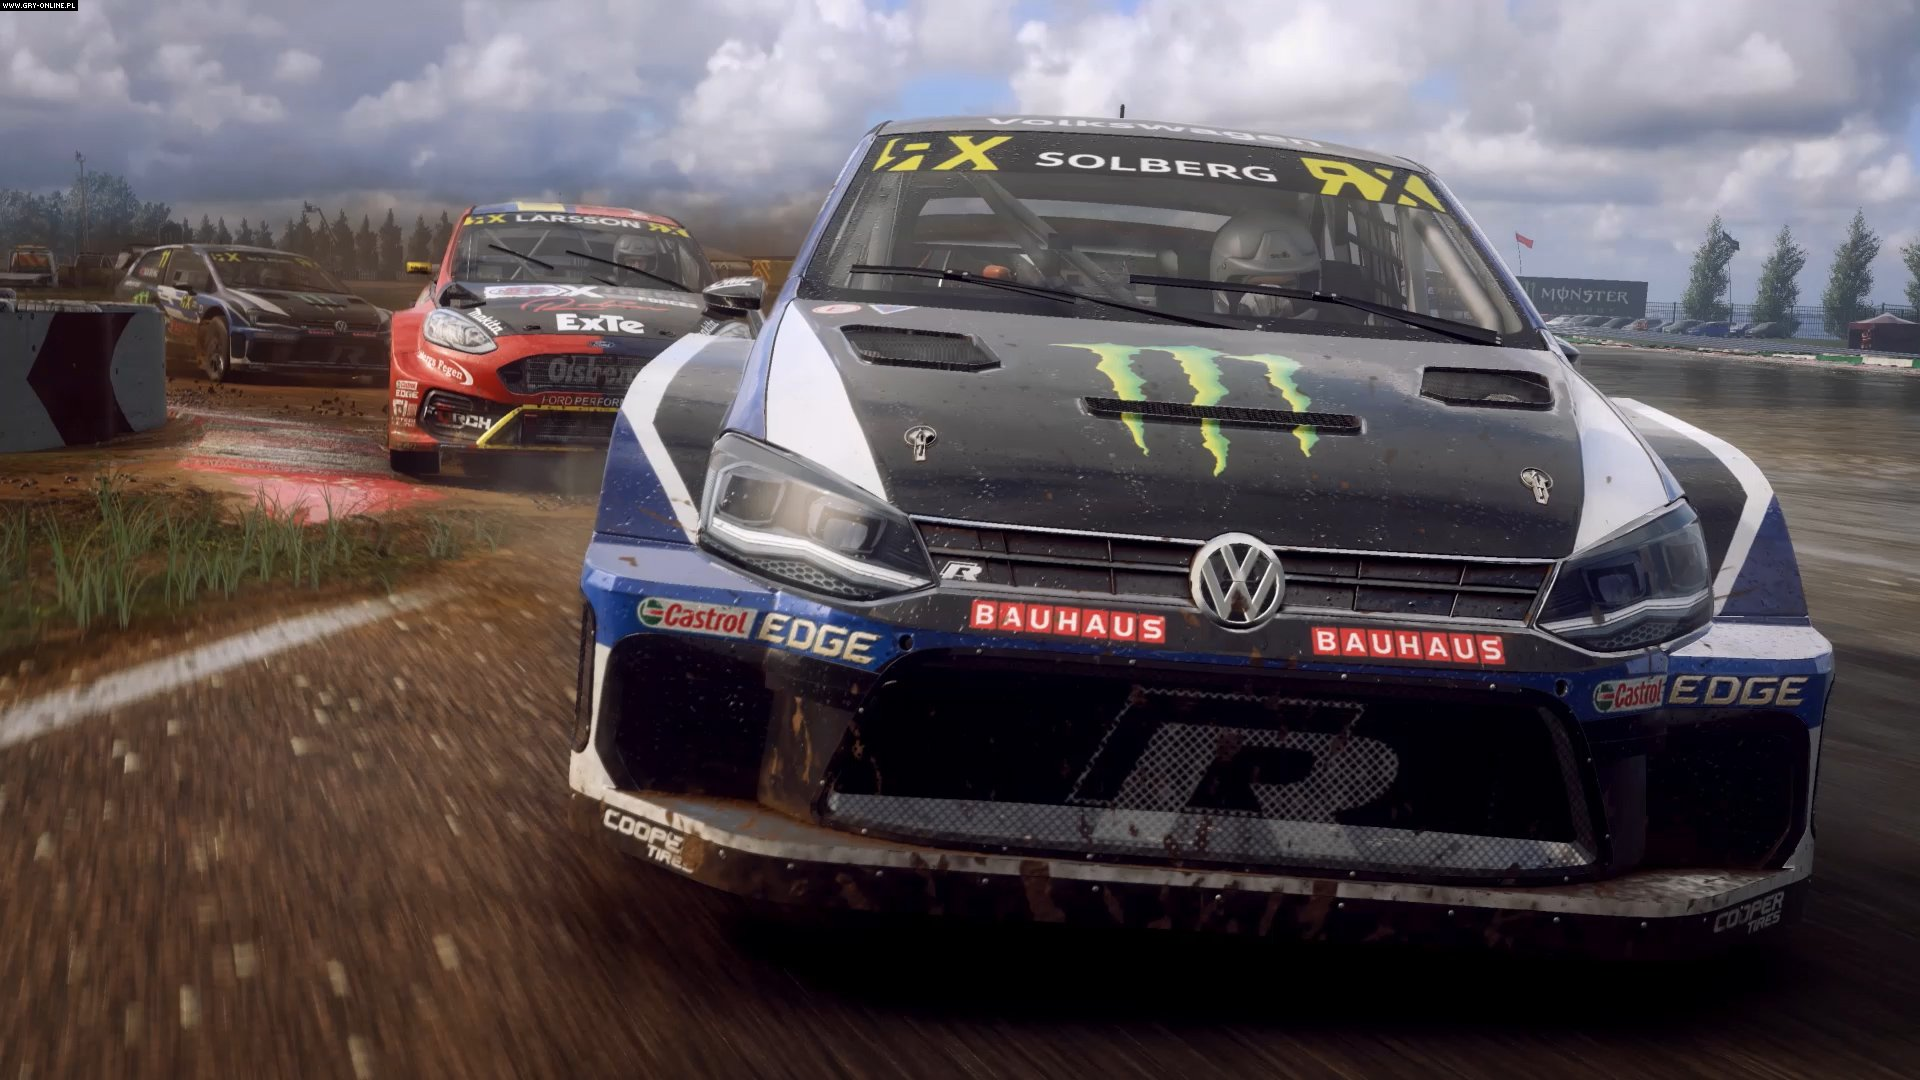 DiRT Rally 2.0 PC, PS4, XONE Games Image 12/49, Codemasters Software